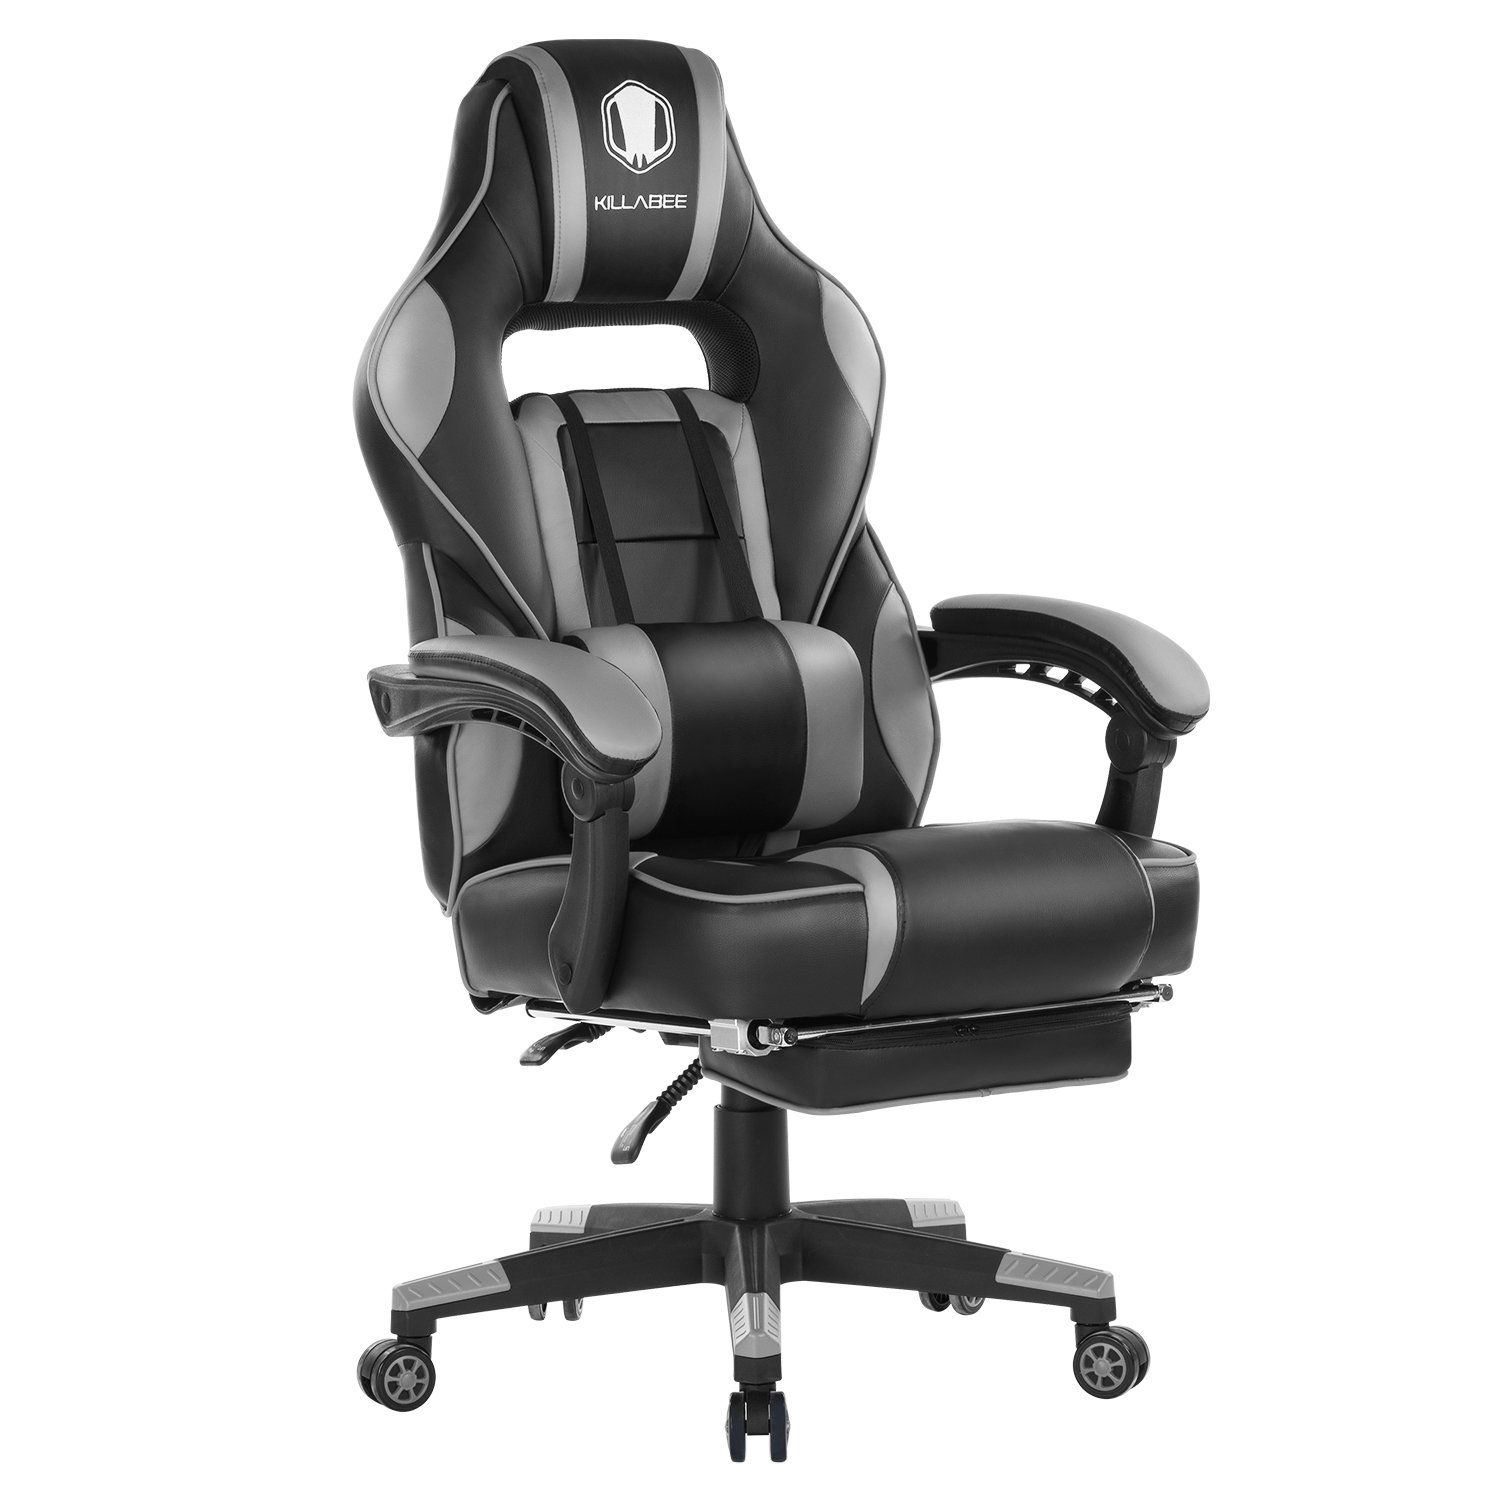 Brilliant Killabee 9015 Gray Gaming Chair Products In 2019 Gaming Pdpeps Interior Chair Design Pdpepsorg